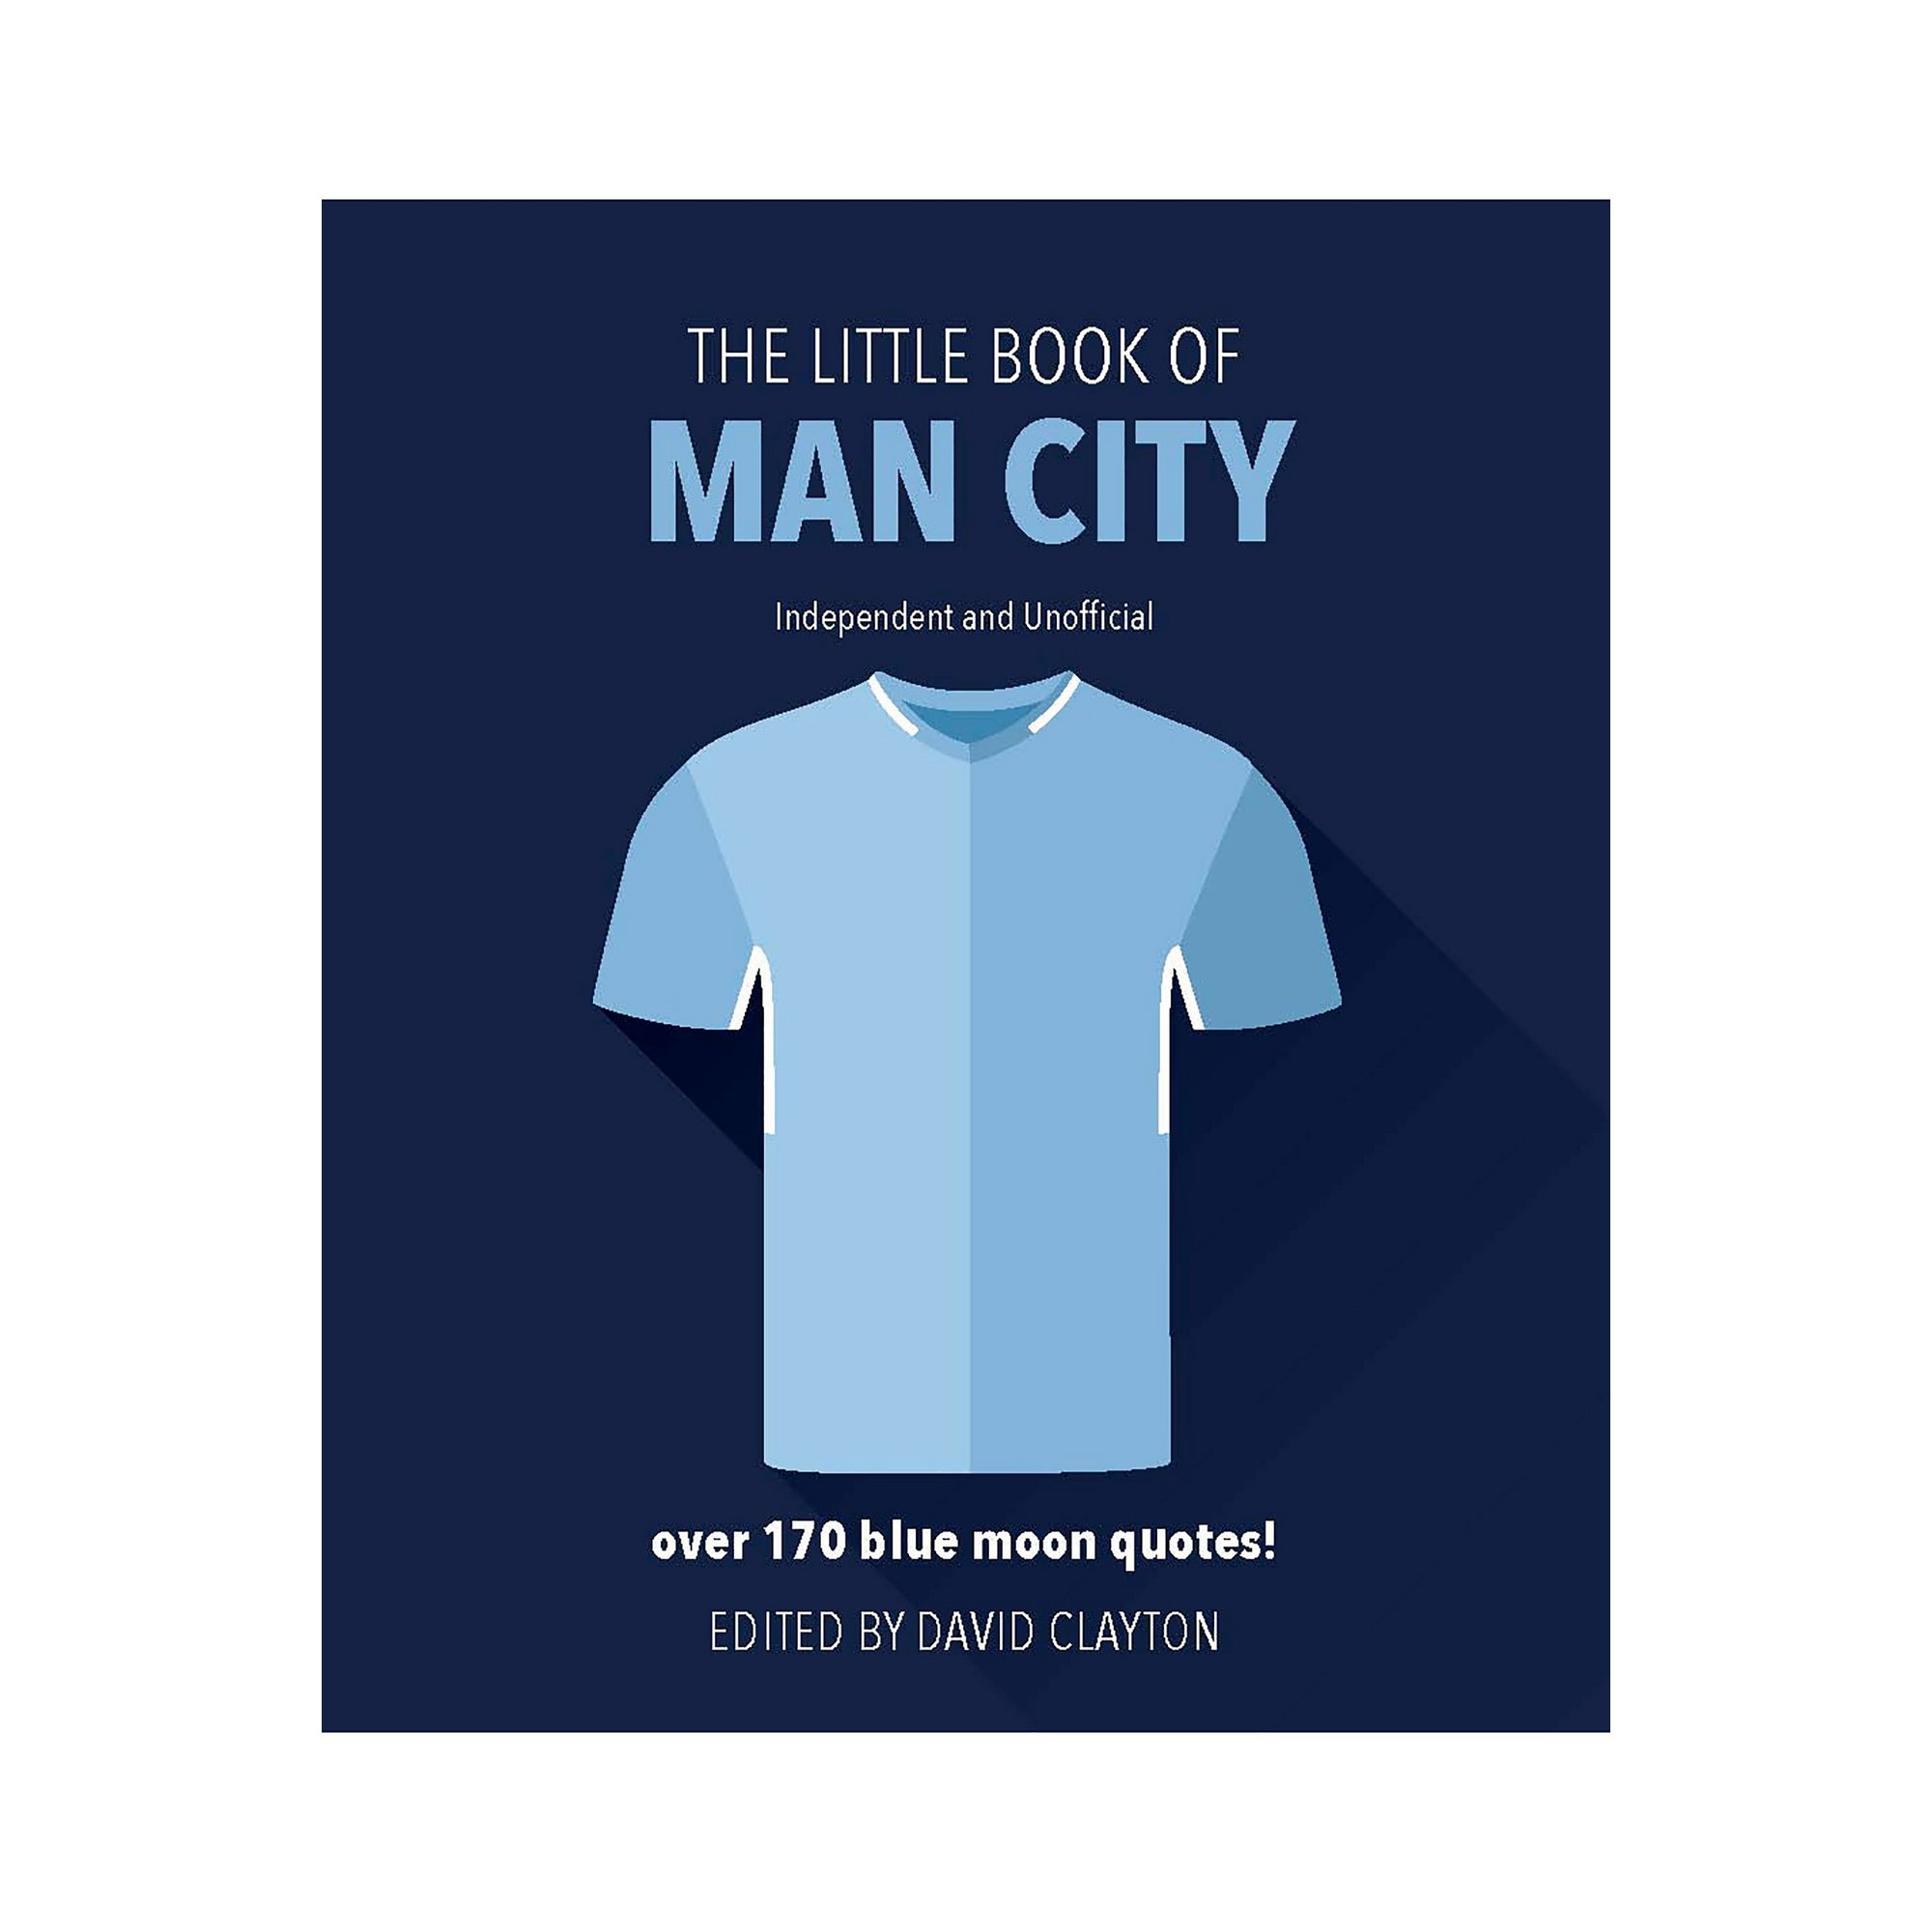 Image of Little Book of Man City Book